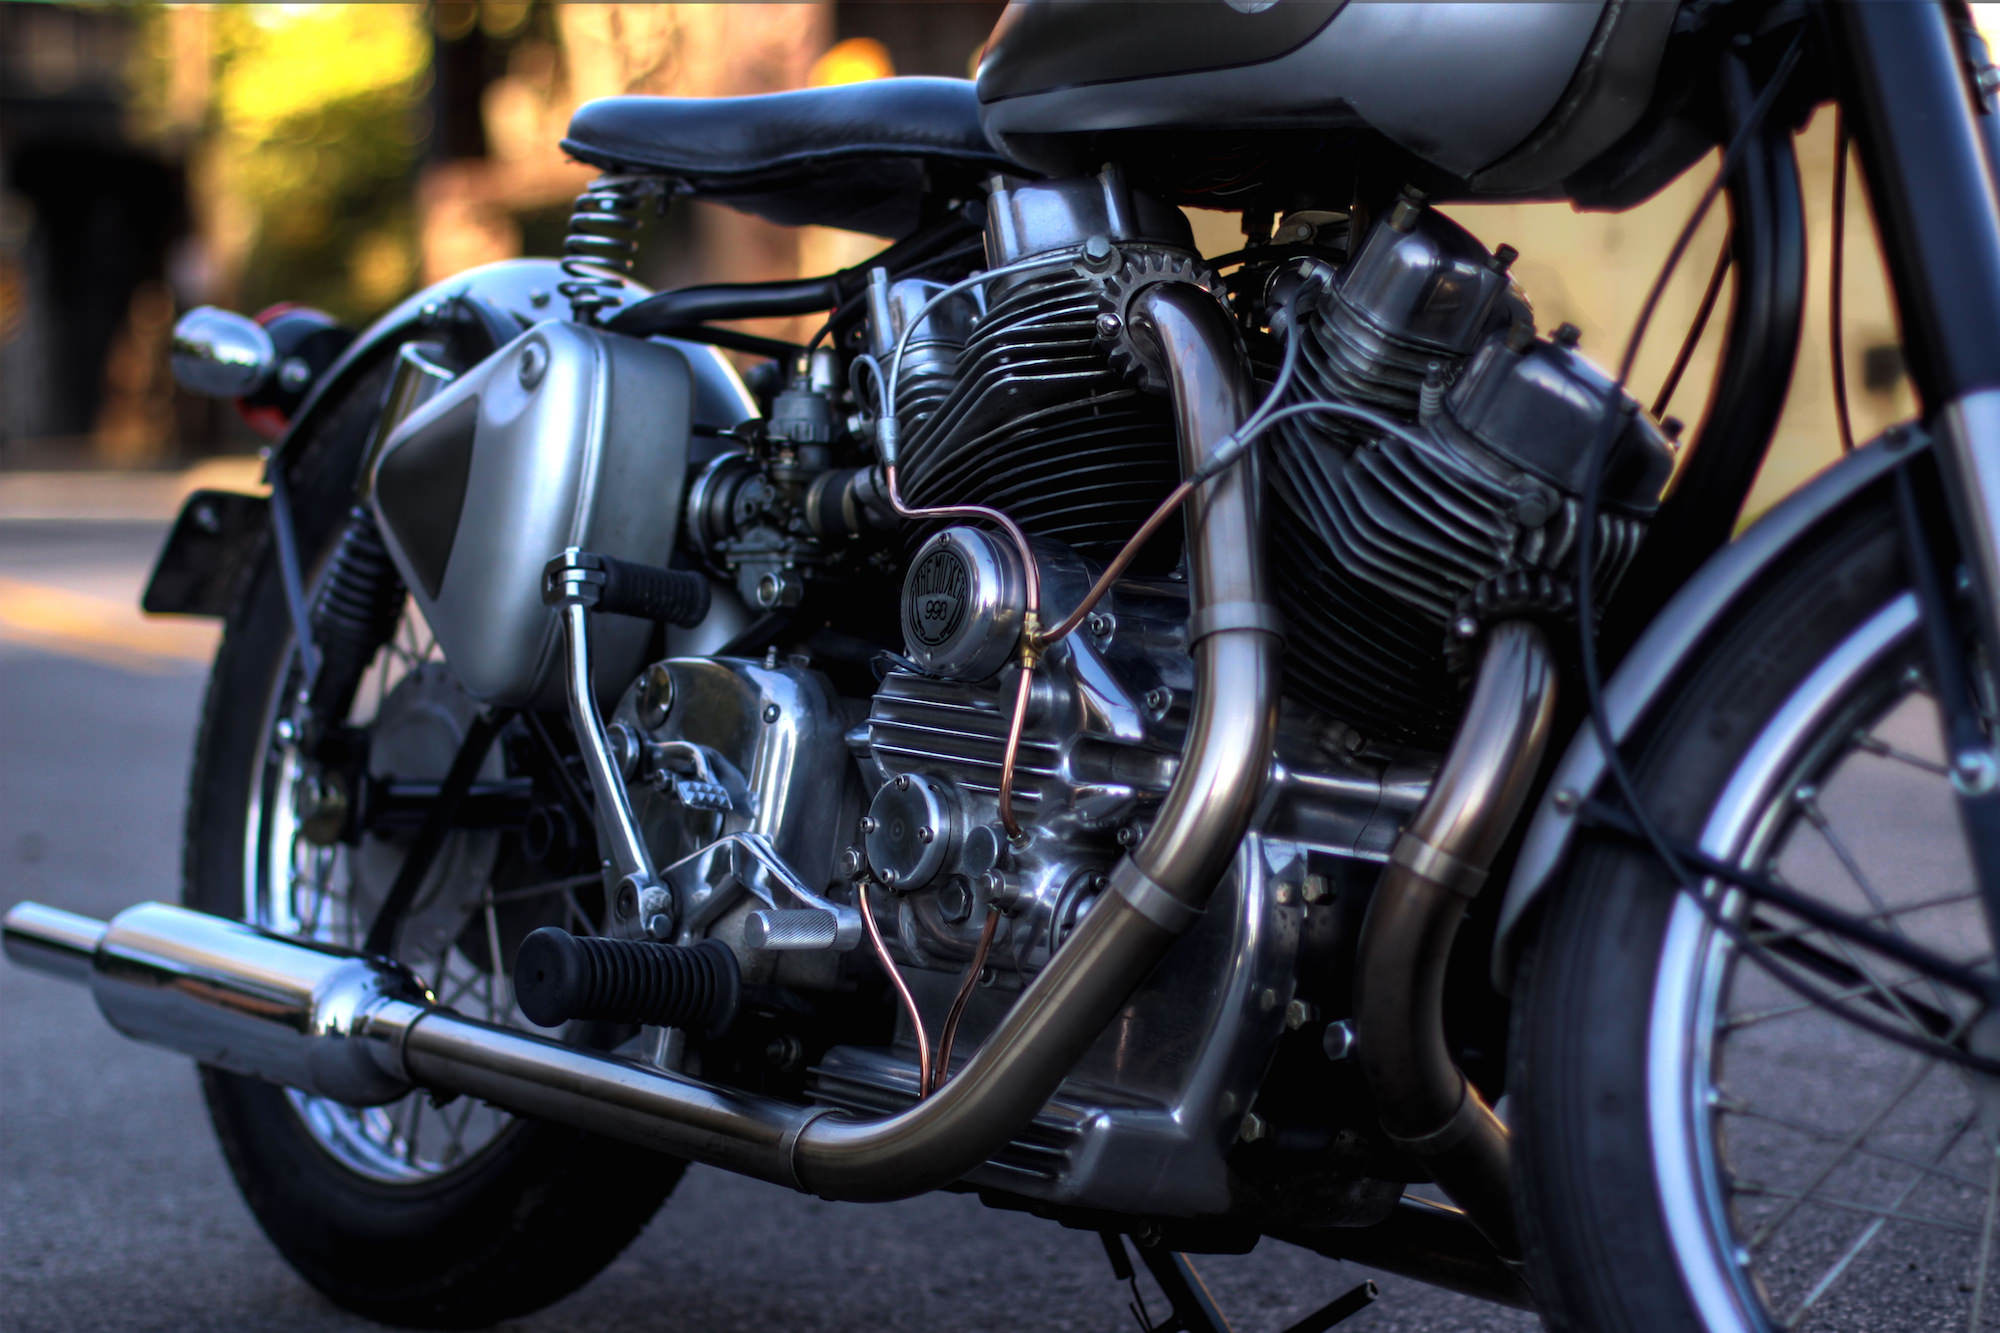 The Musket Royal Enfield V Twin